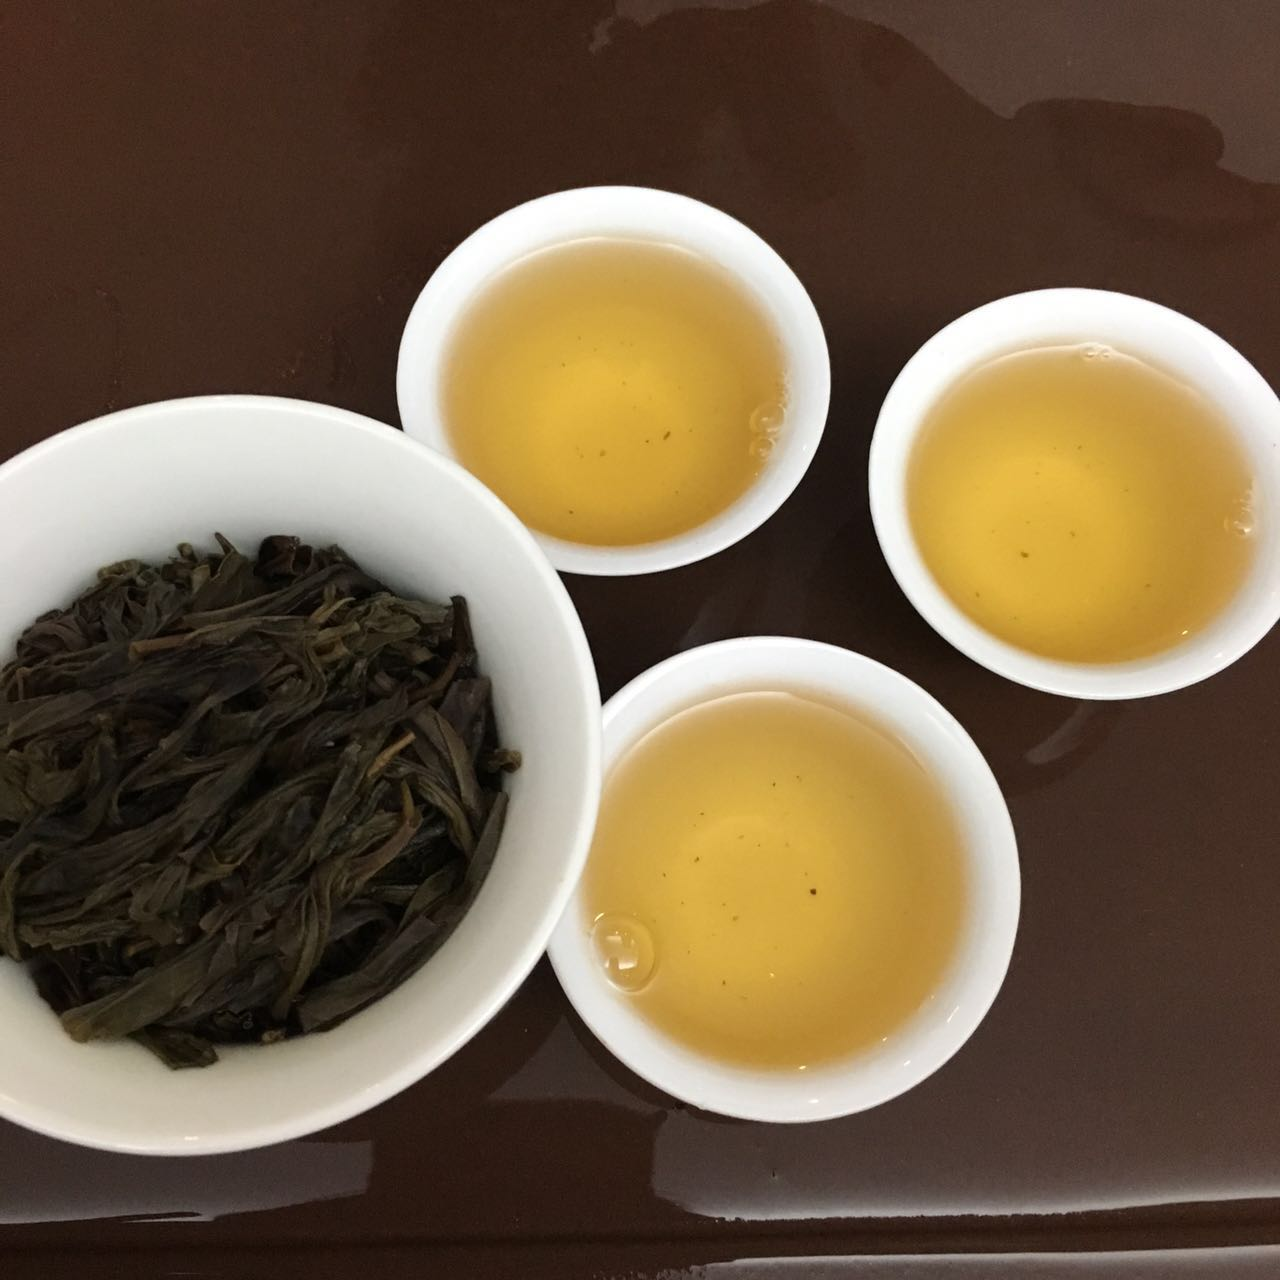 China Chaozhou Spring Oolong Tea Old Bush More Than 300 Year Wu Dong Mi Lan Xiang 60g